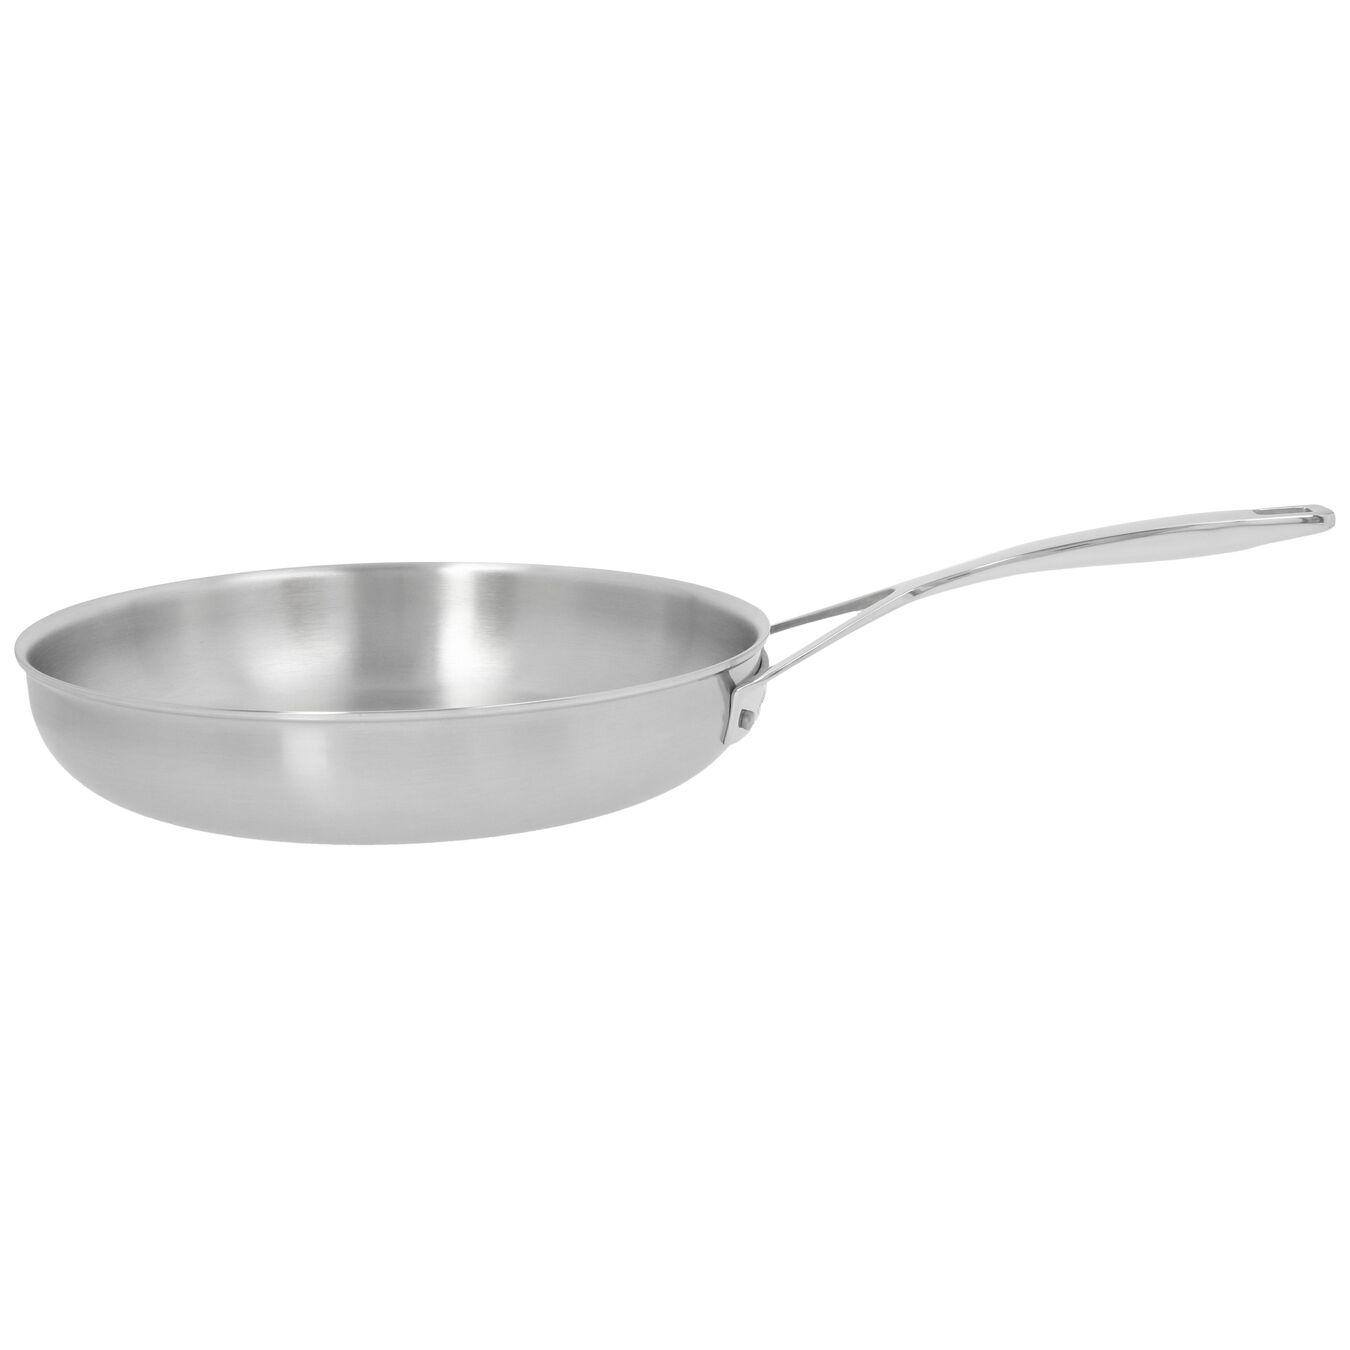 8-inch, 18/10 Stainless Steel, Non-stick, Frying pan,,large 1